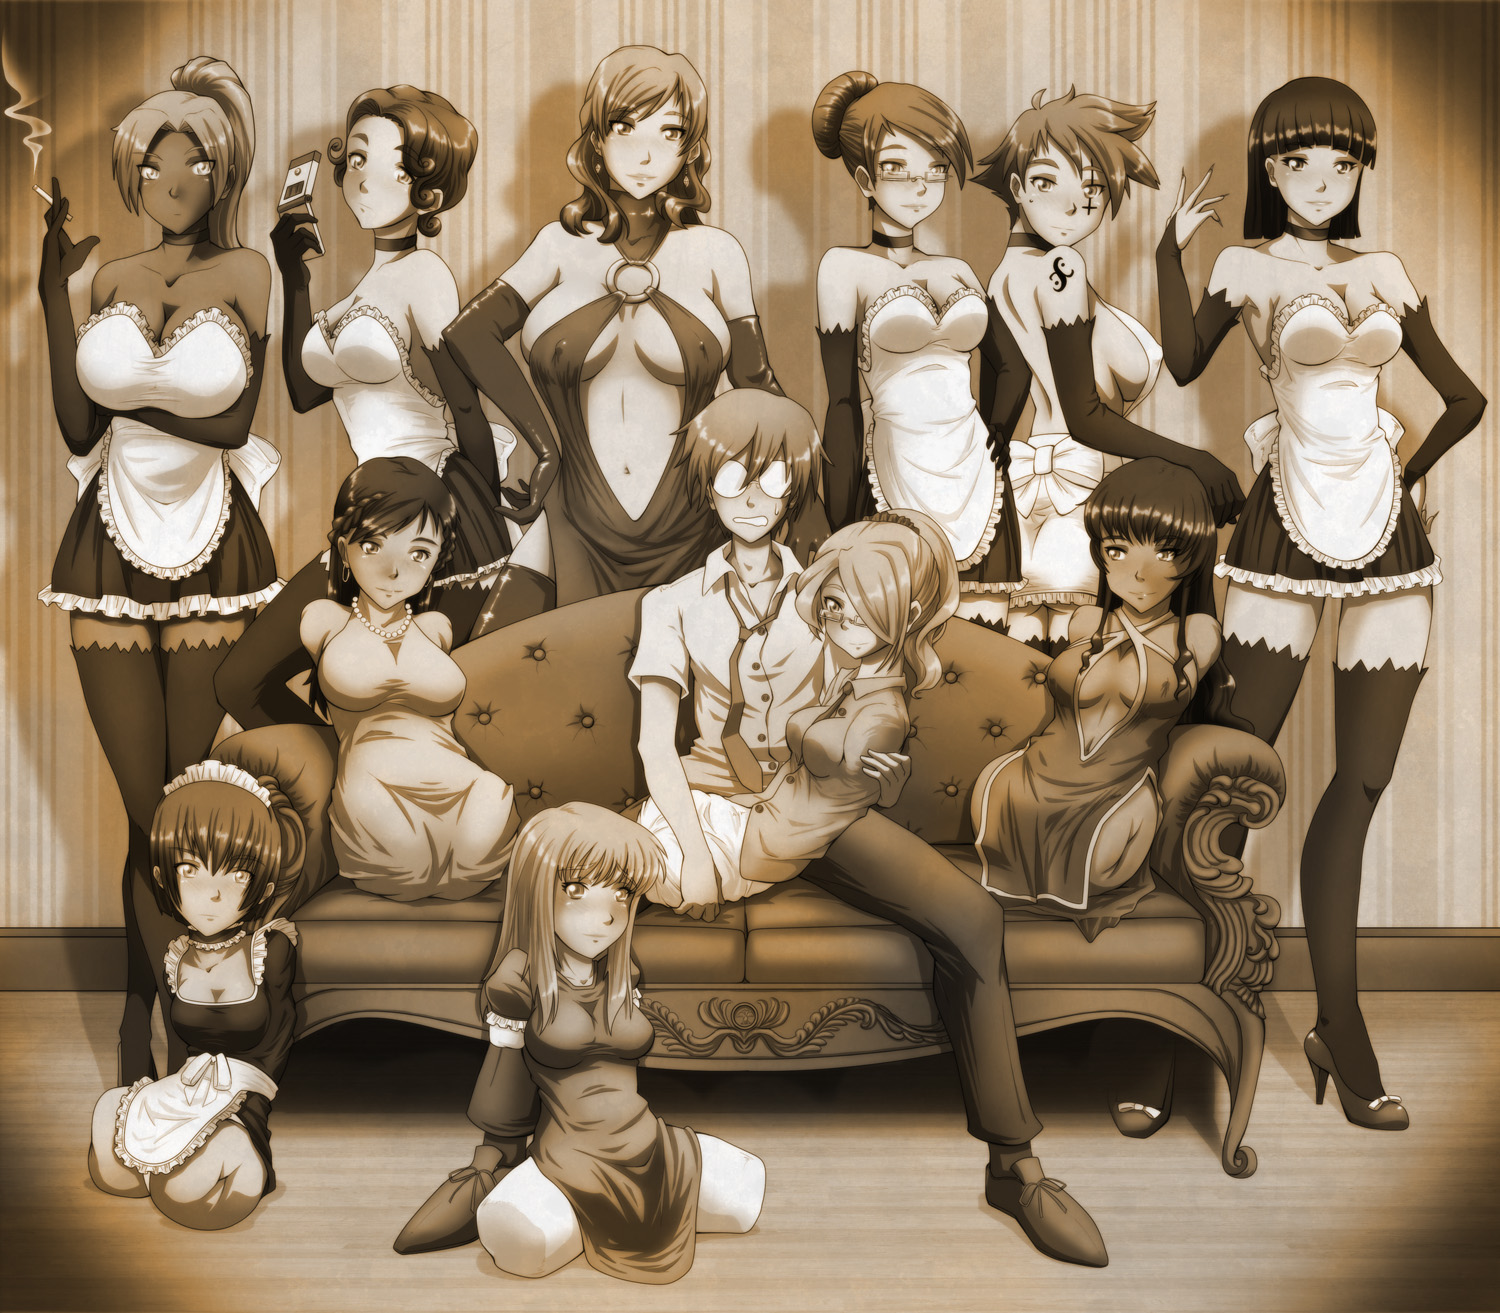 Quad Harem sepia by gamera1985